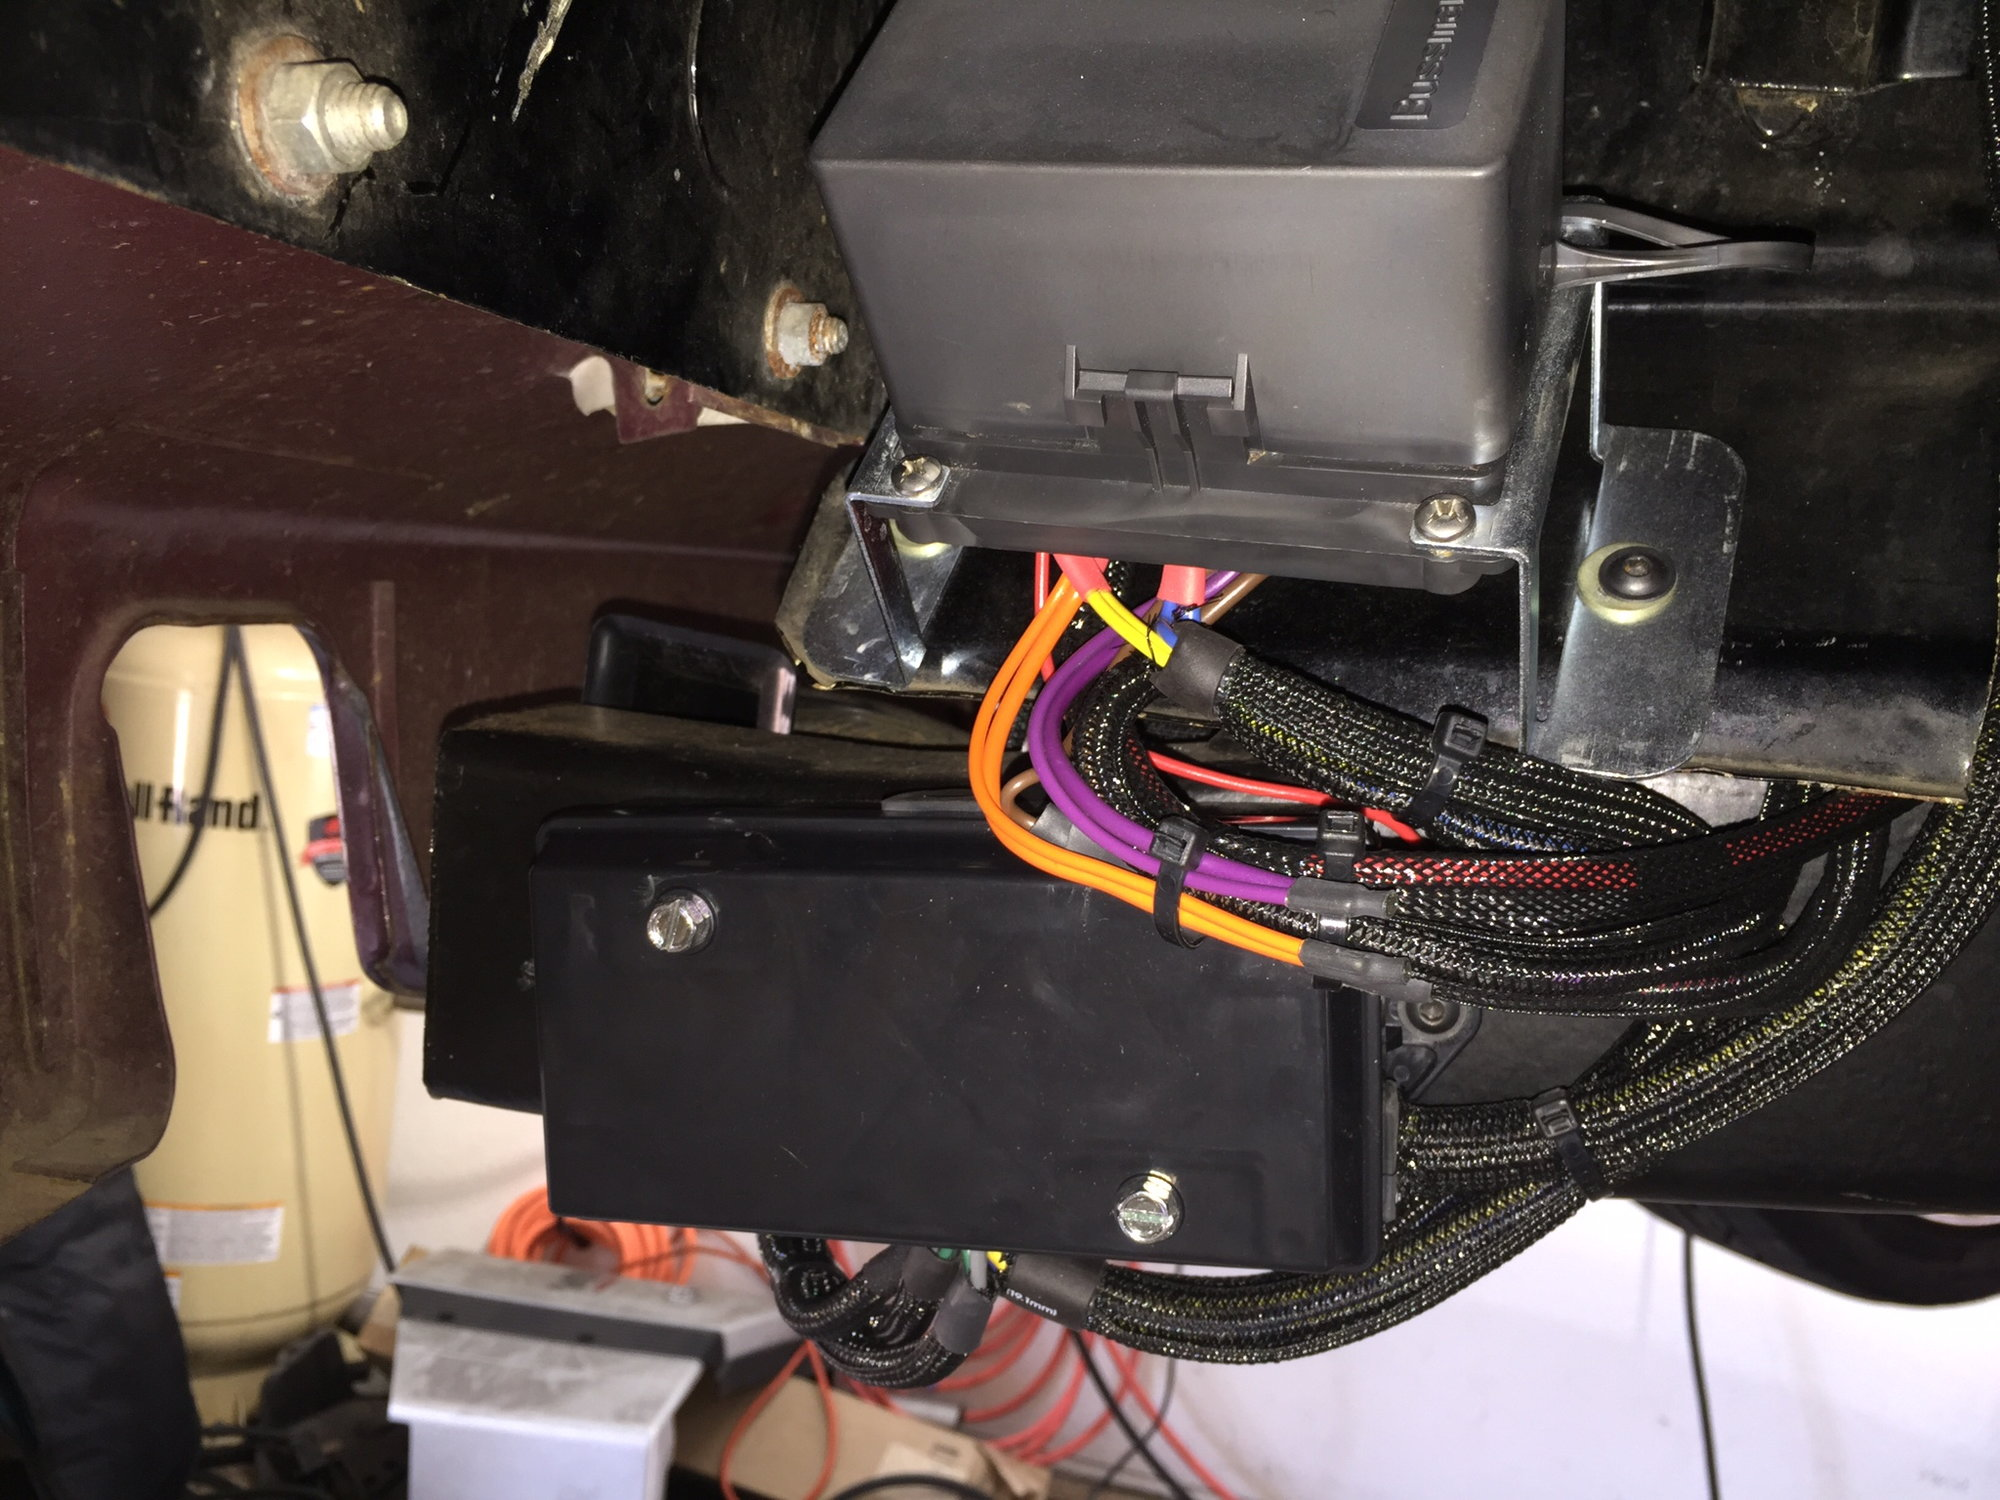 Trinary Switch For Ac Question Ls1tech Camaro And Firebird Forum Wiring Dual Electric Fans Box To Keep It From Blowing Fuses Every Time Starts Good Luck I Added The Fuse Relay In Drivers Wheel Well Lots Of Ways Do This